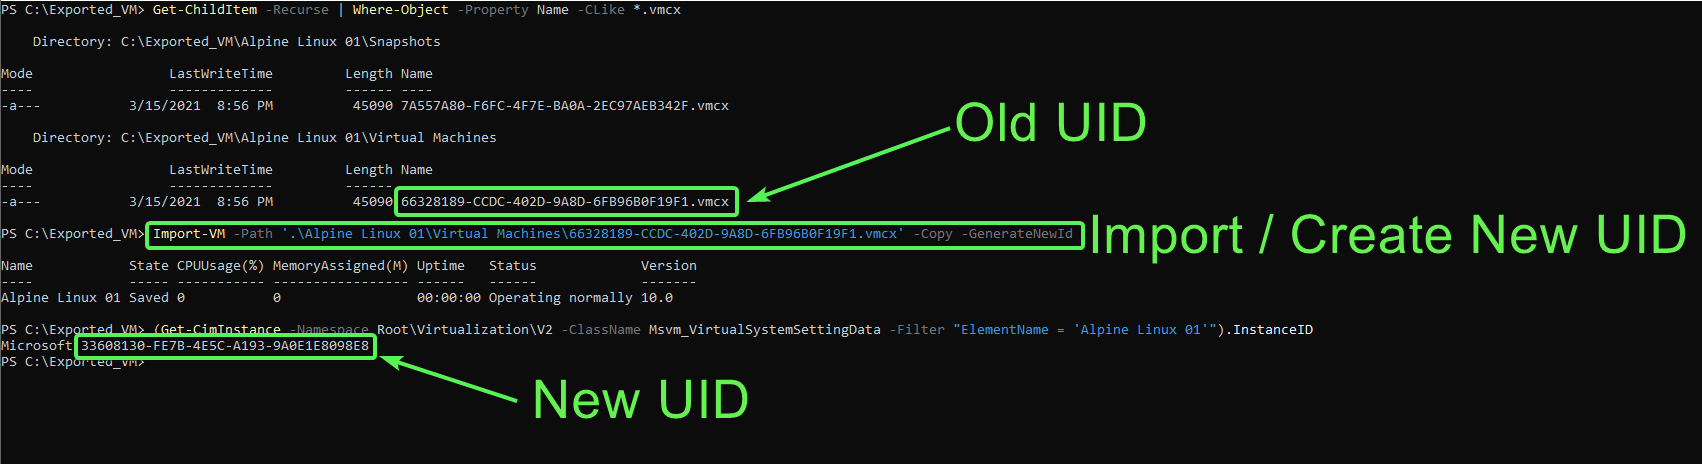 Showing previous UID prior to import vs. new UID created with Copy and GenerateNewID parameters.